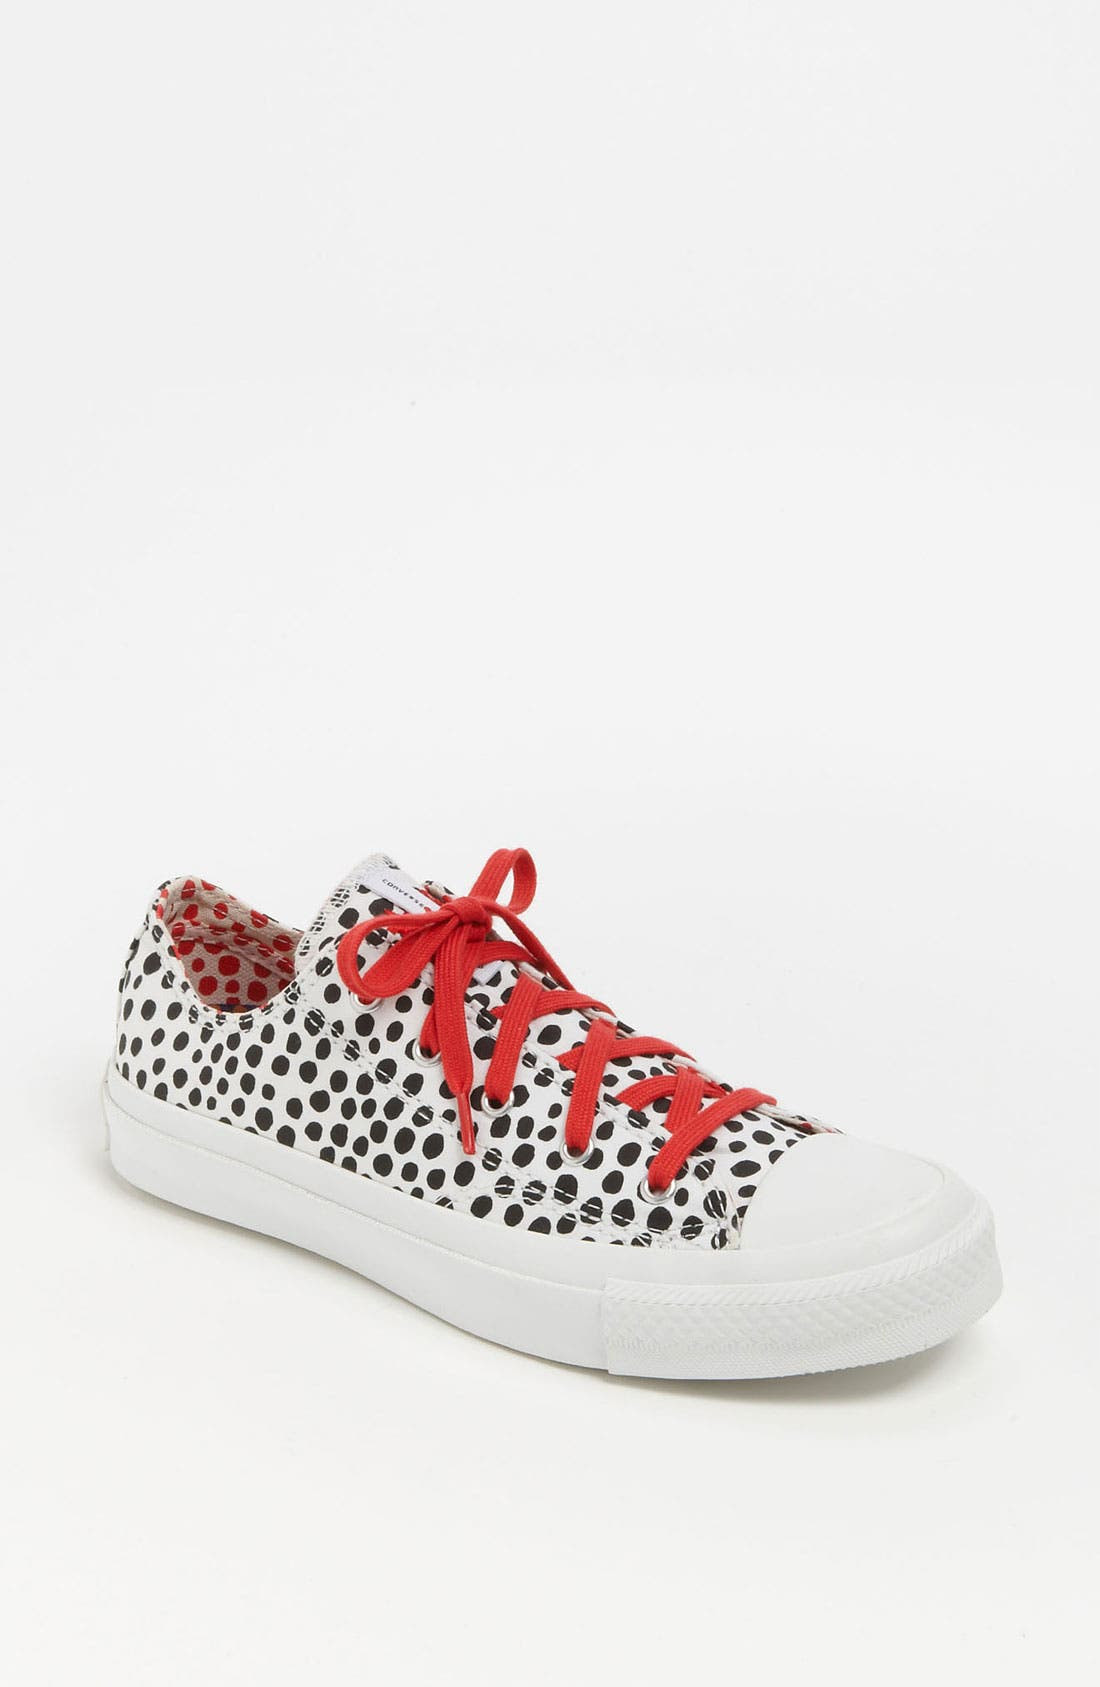 Alternate Image 1 Selected - Converse Chuck Taylor® All Star® 'Marimekko' Sneaker (Women)